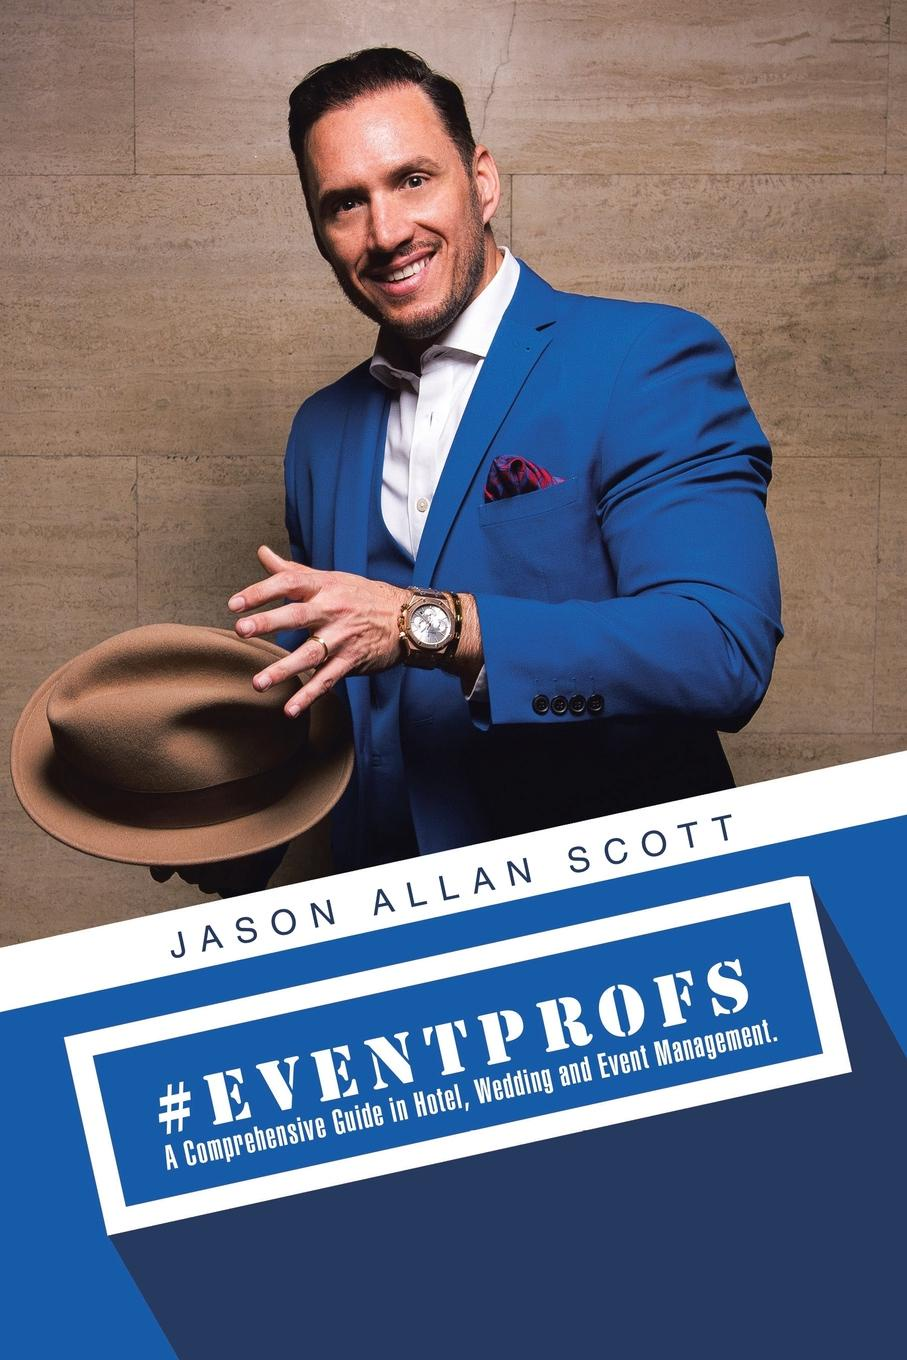 Jason Allan Scott .Eventprofs. A Comprehensive Guide in Hotel, Wedding and Event Management judy allen event planning the ultimate guide to successful meetings corporate events fundraising galas conferences conventions incentives and other special events